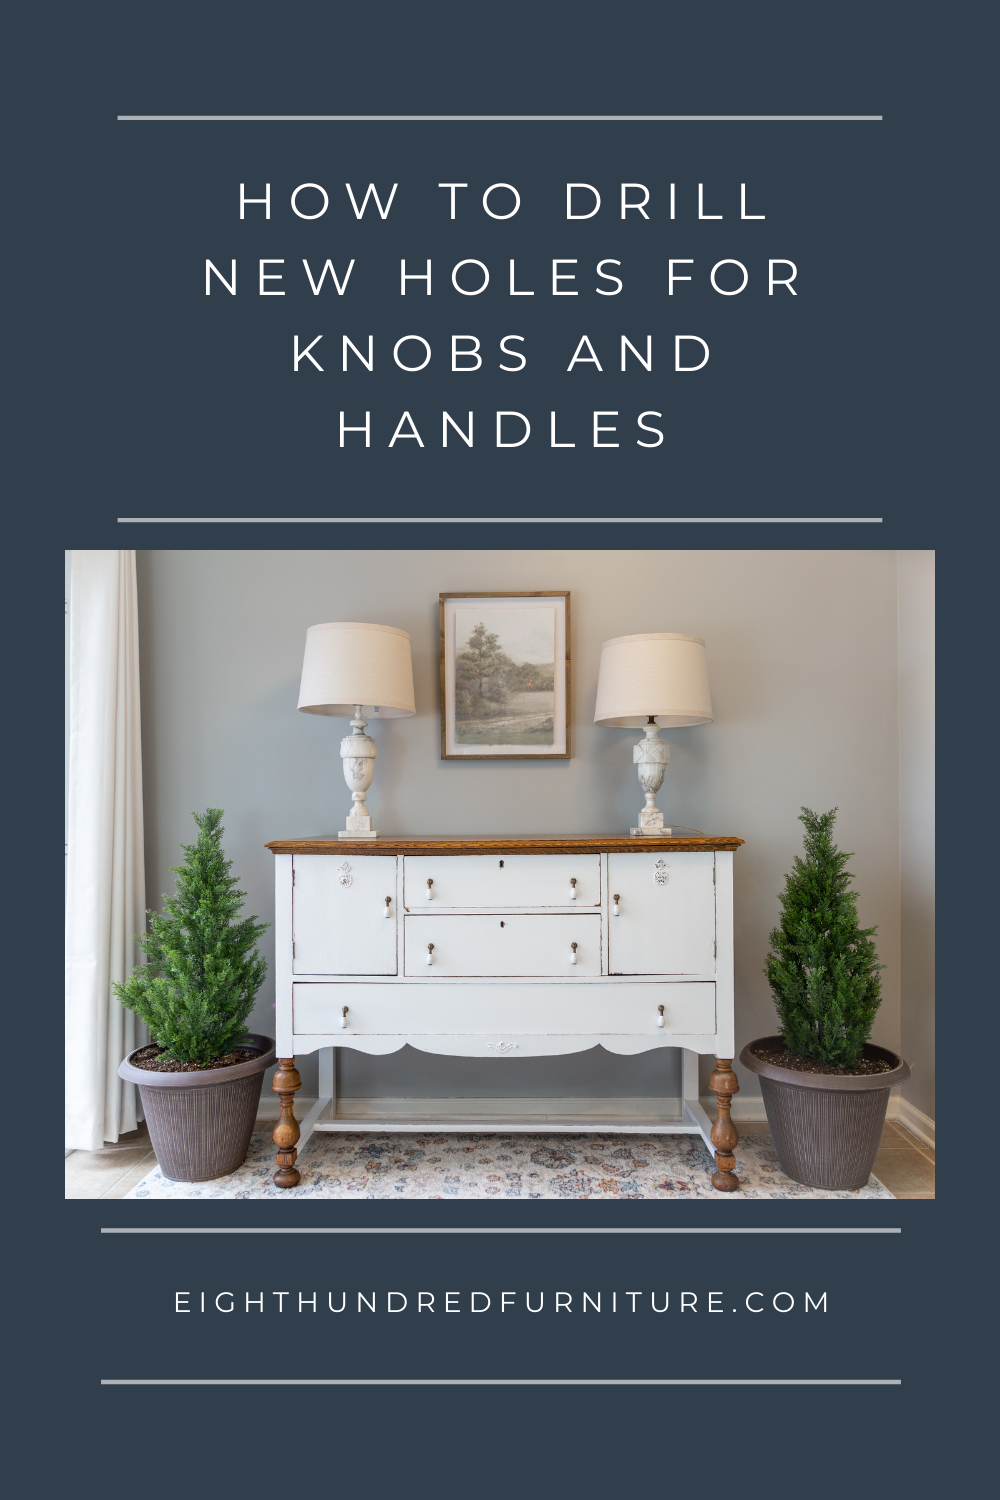 How to drill new holes for knobs and handles on furniture